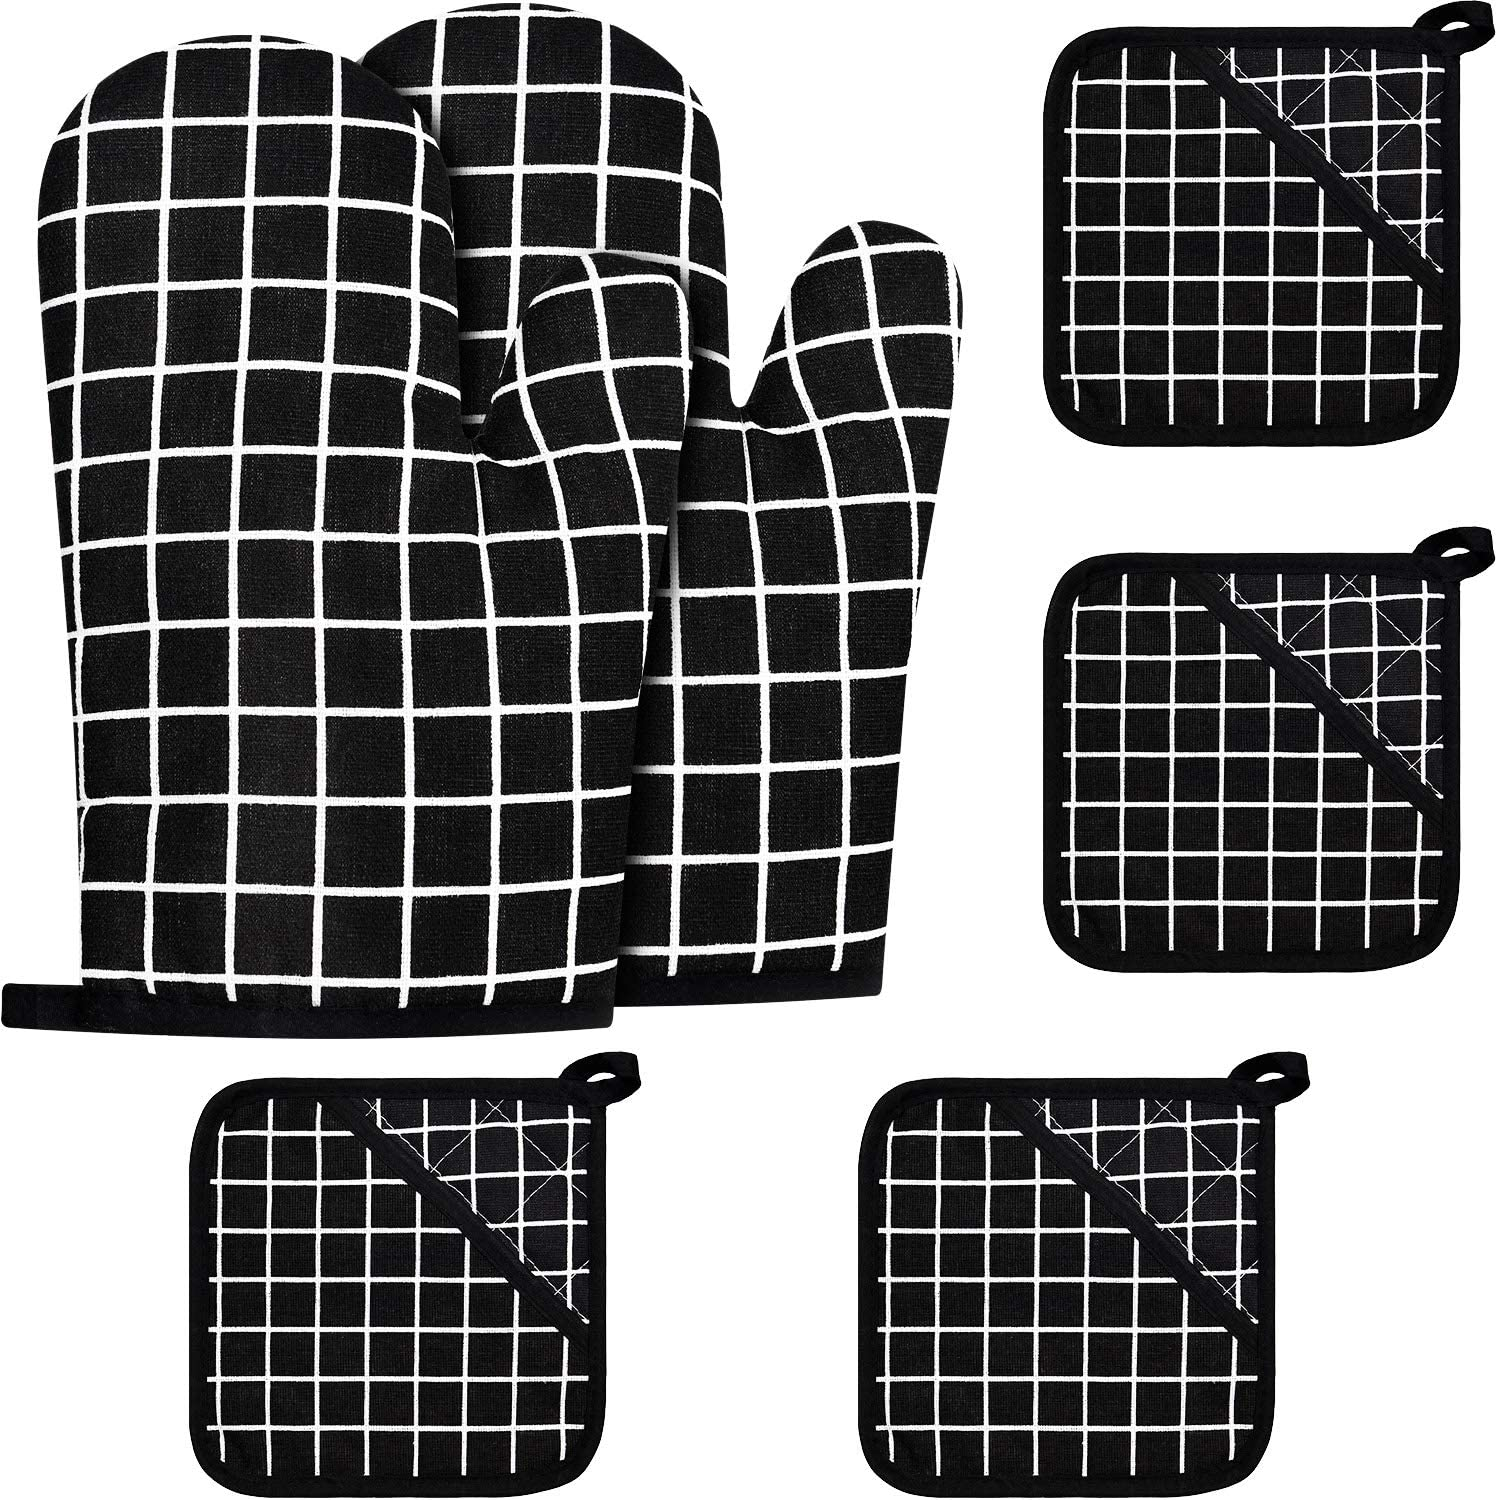 2 Pieces Oven Mitts and 4 Pieces Pot Holders Oven Kitchen Non-Slip Gloves and Hot Pads for Cooking Baking Heat Resistant Finger Hand Wrist Protection